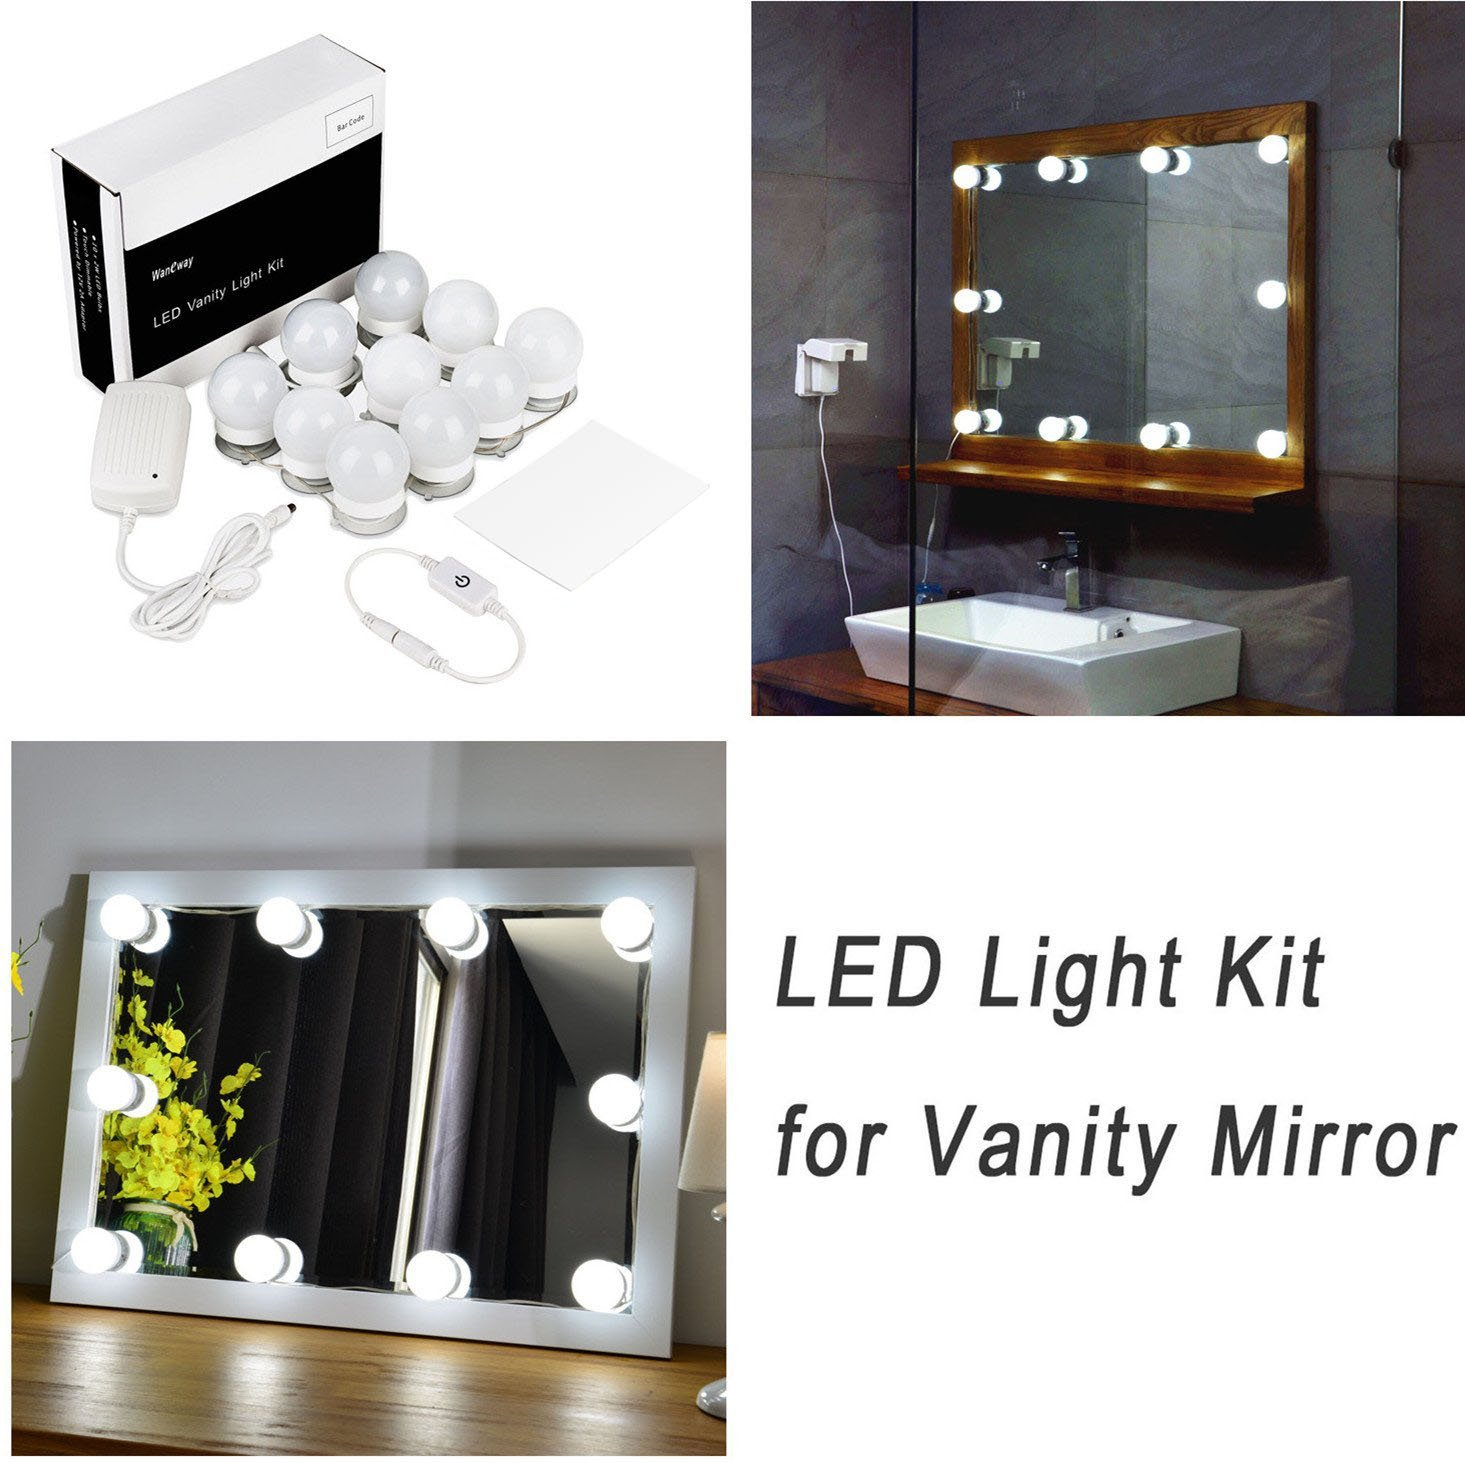 vanity mirror lighting. WanEway Style LED Vanity Mirror Lights Kit For Makeup Dressing Table Set Mirrors With Dimmer And Power Supply Plug In Lighting Fixture Strip, 13.5ft, Amazon UK